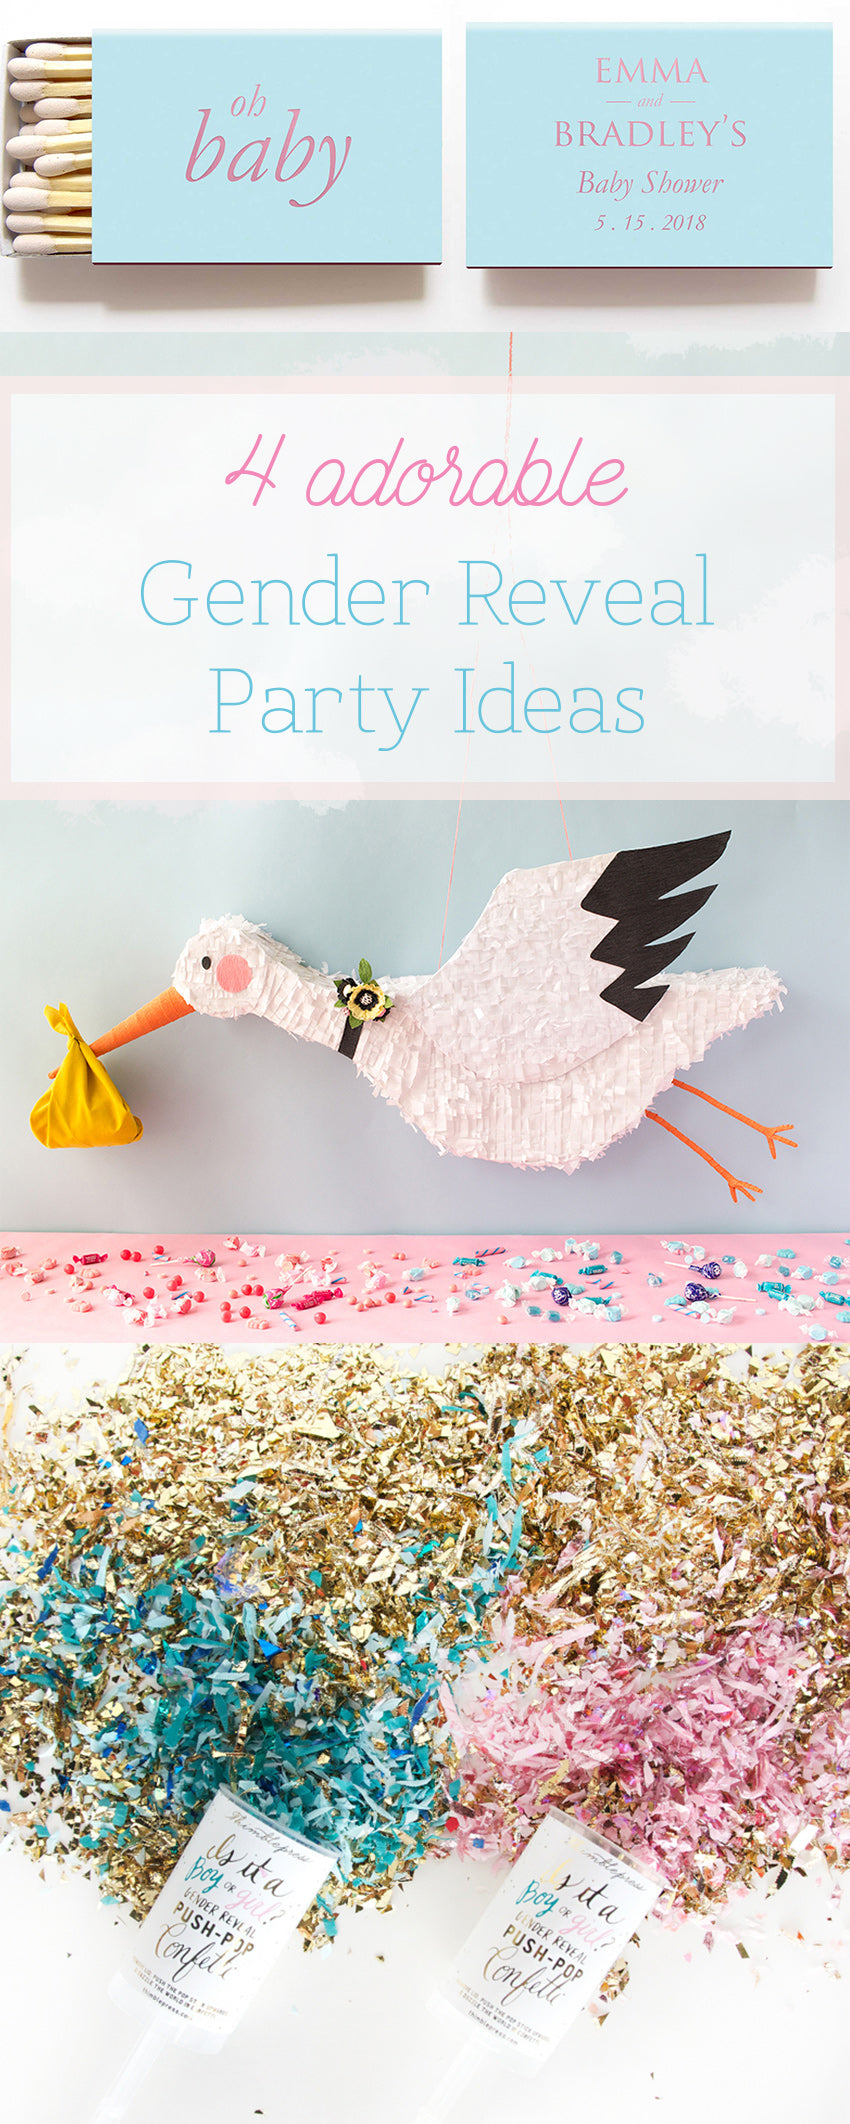 4 Gender Reveal Party Ideas